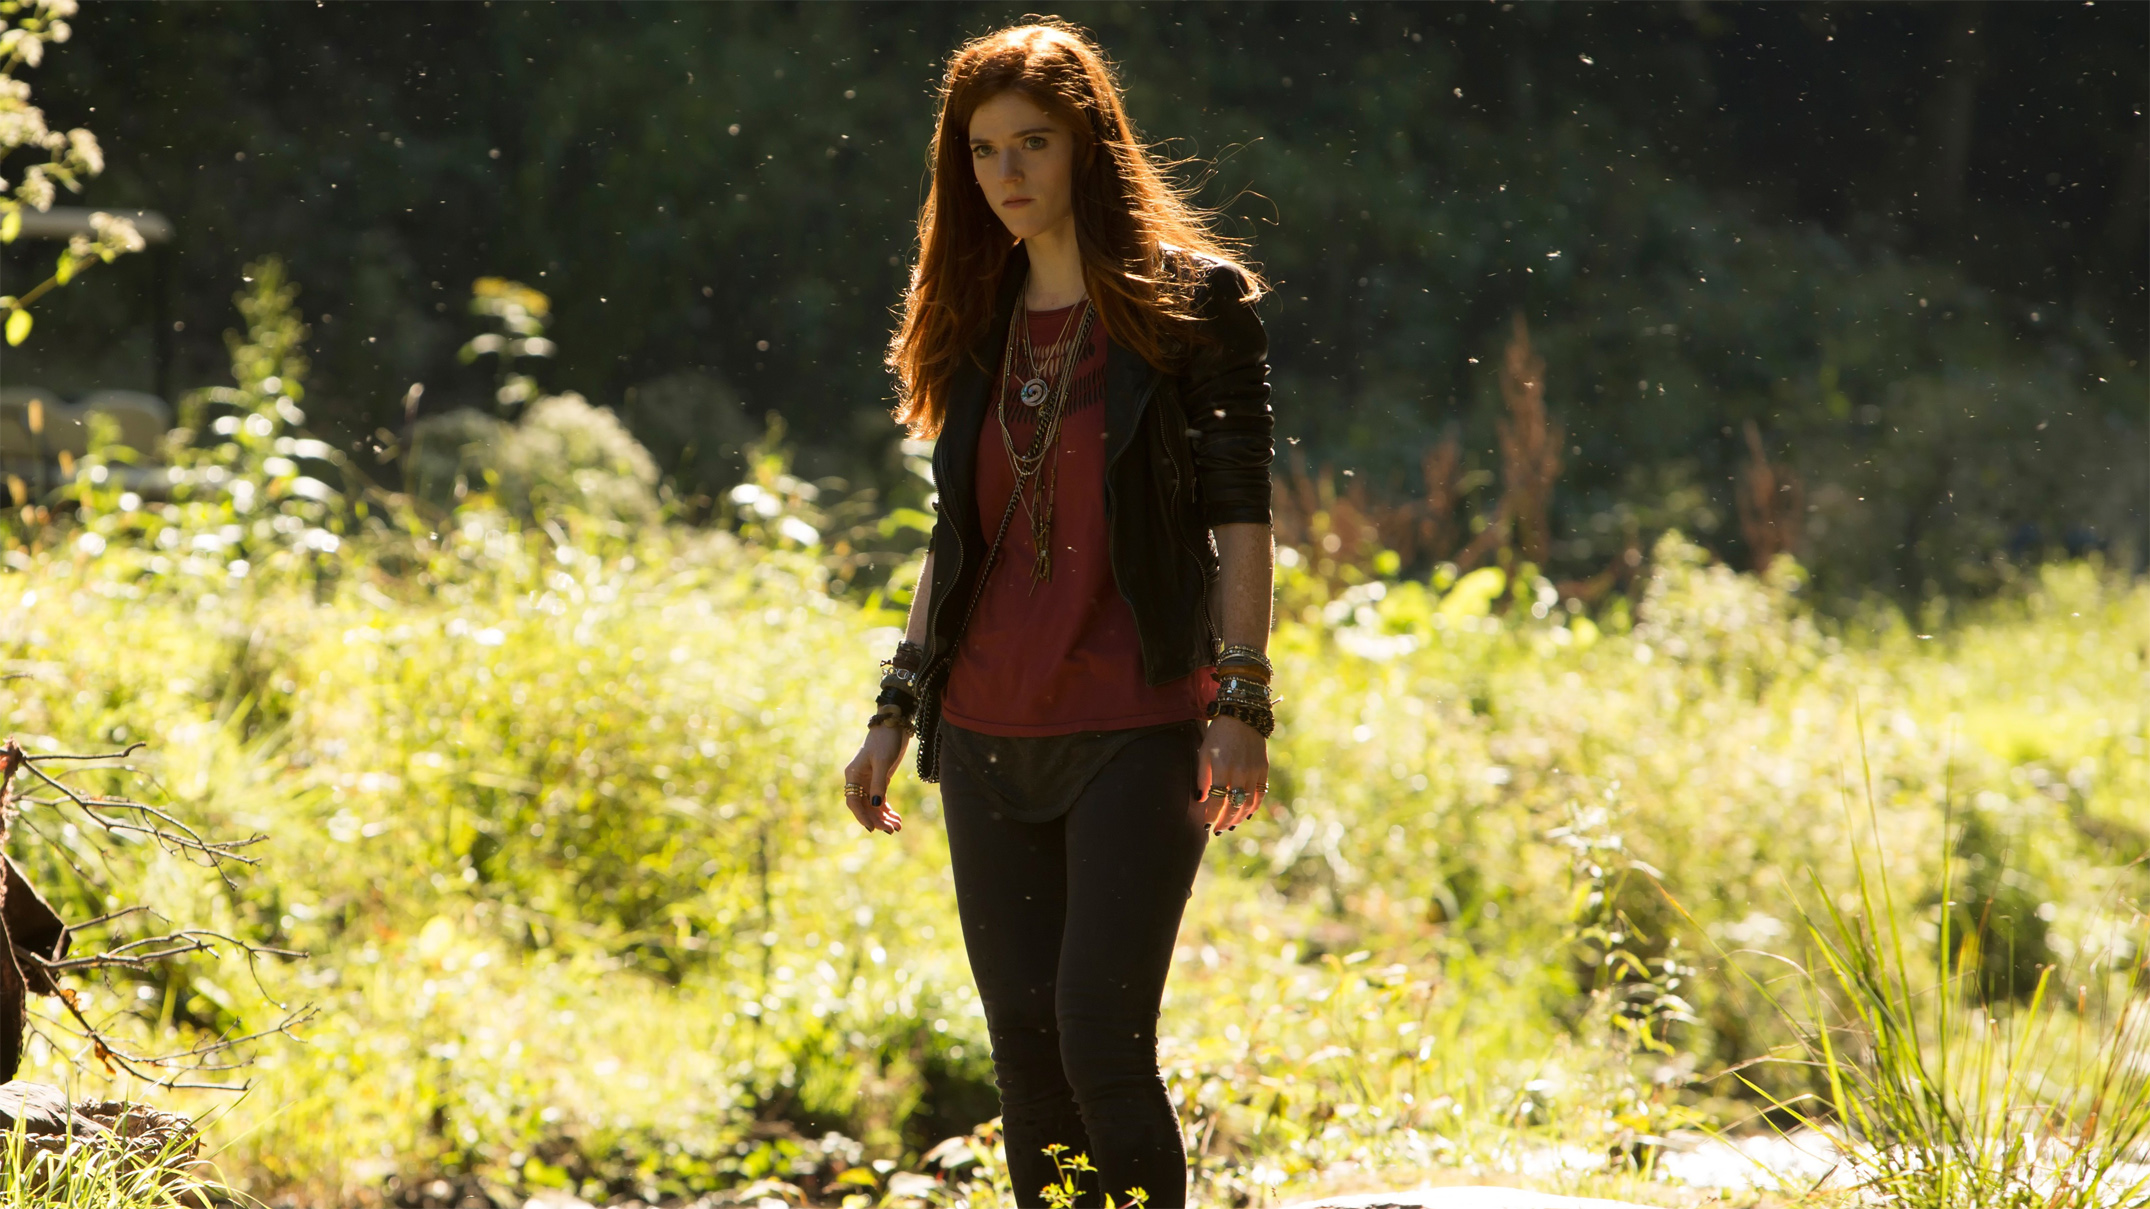 #women Outdoors, #rose Leslie, #redhead, Wallpaper - Last Witch Hunter Rose , HD Wallpaper & Backgrounds